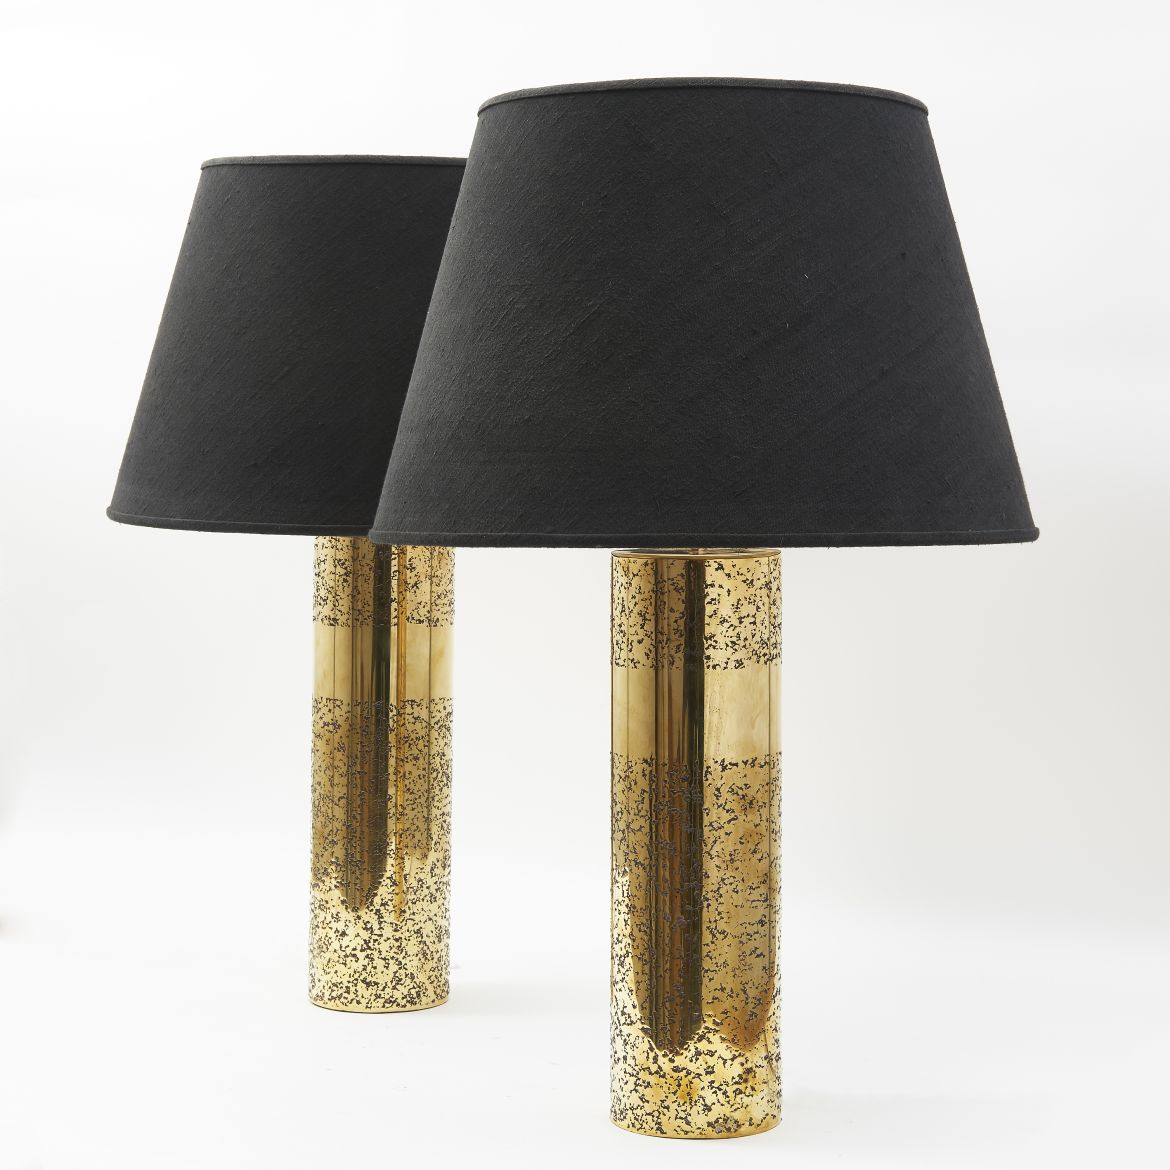 Brass Aban Lamps By Arriau